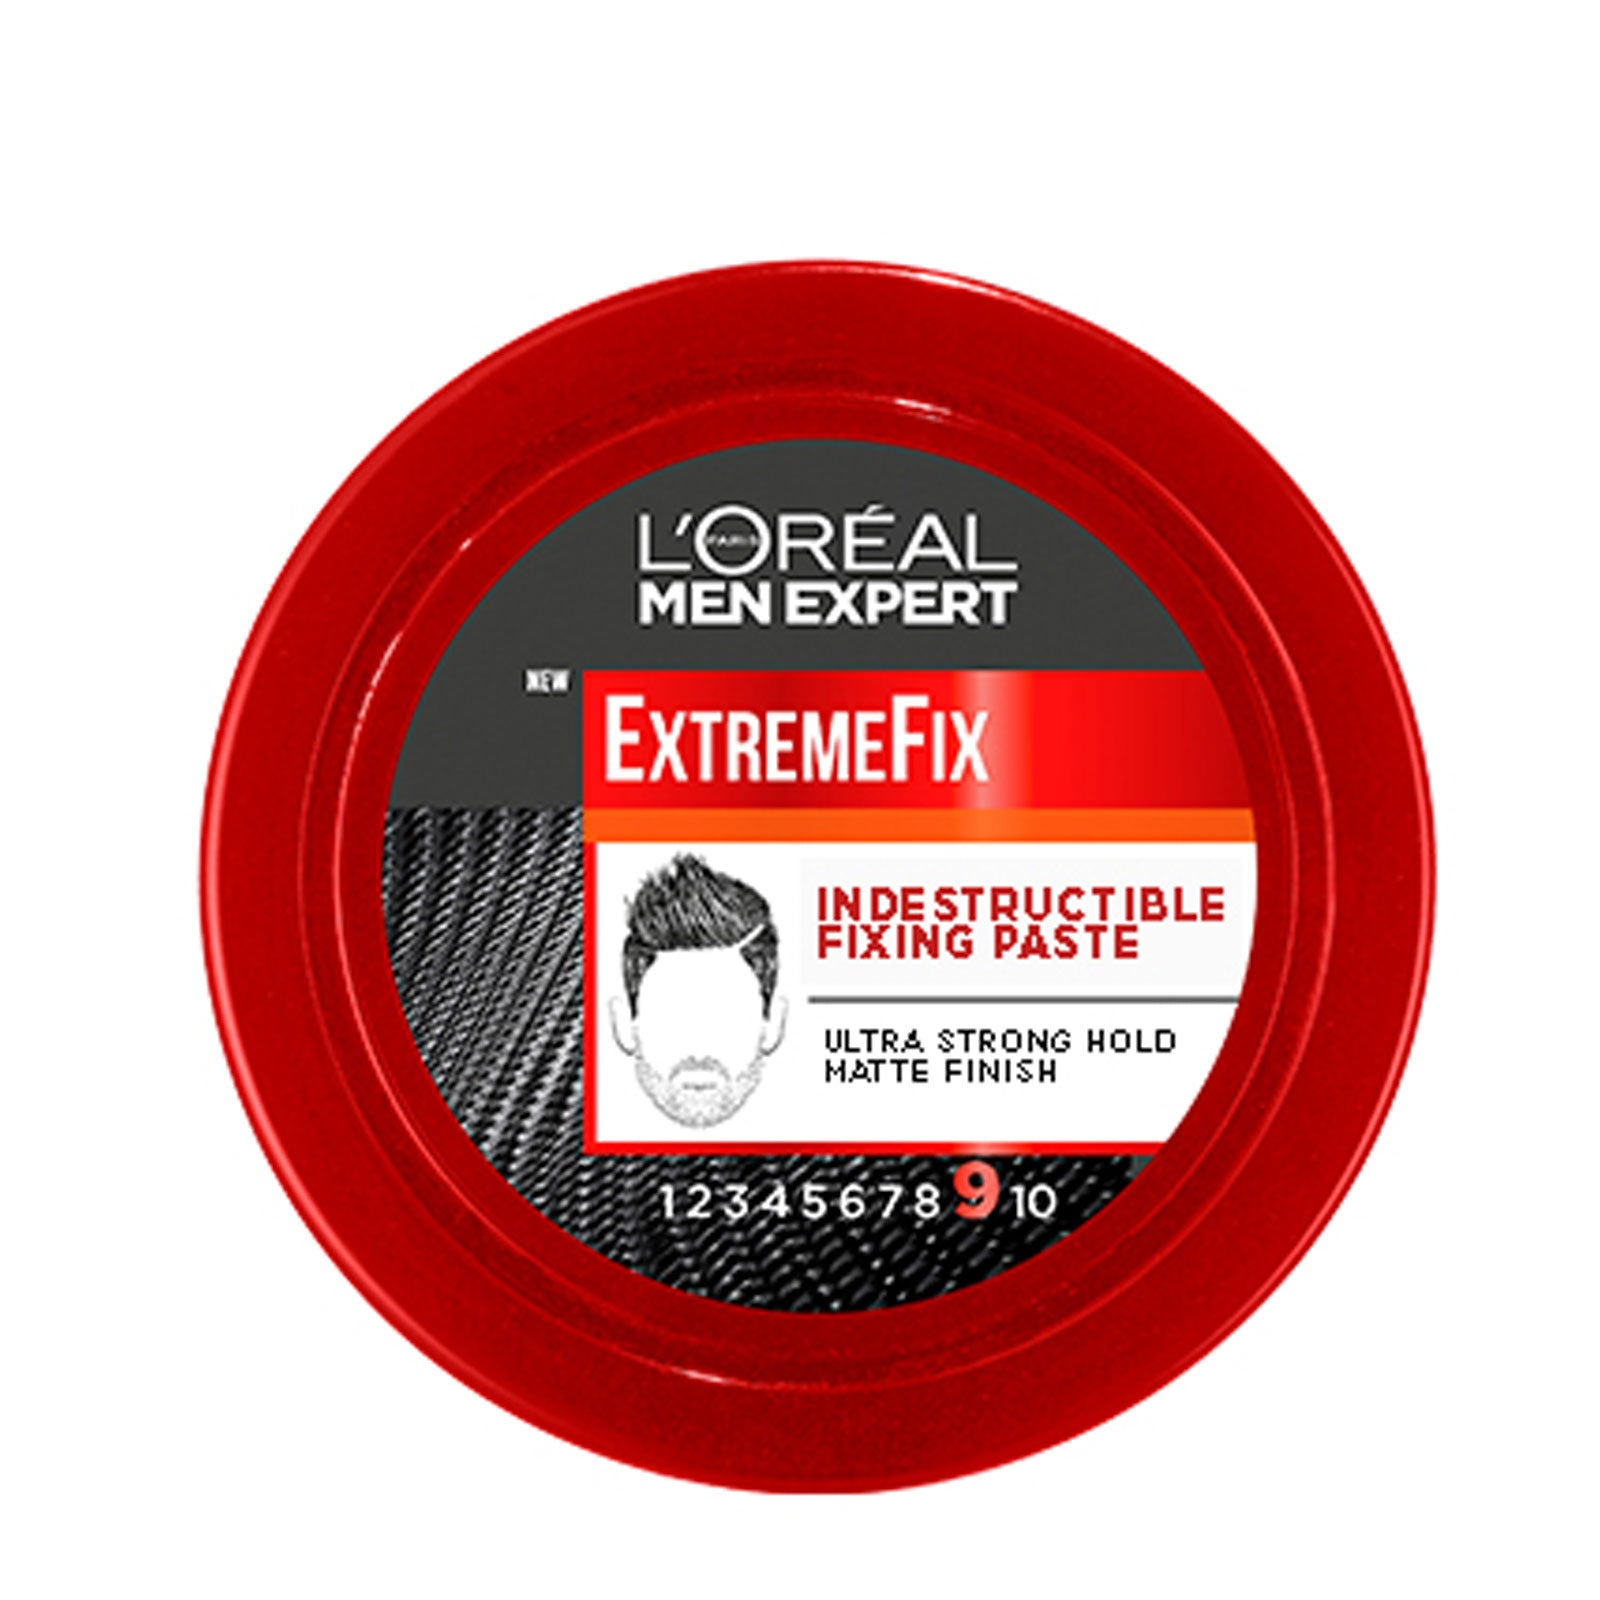 L'Oreal Men Expert ExtremeFix Extreme Hold Invincible Paste 75ml